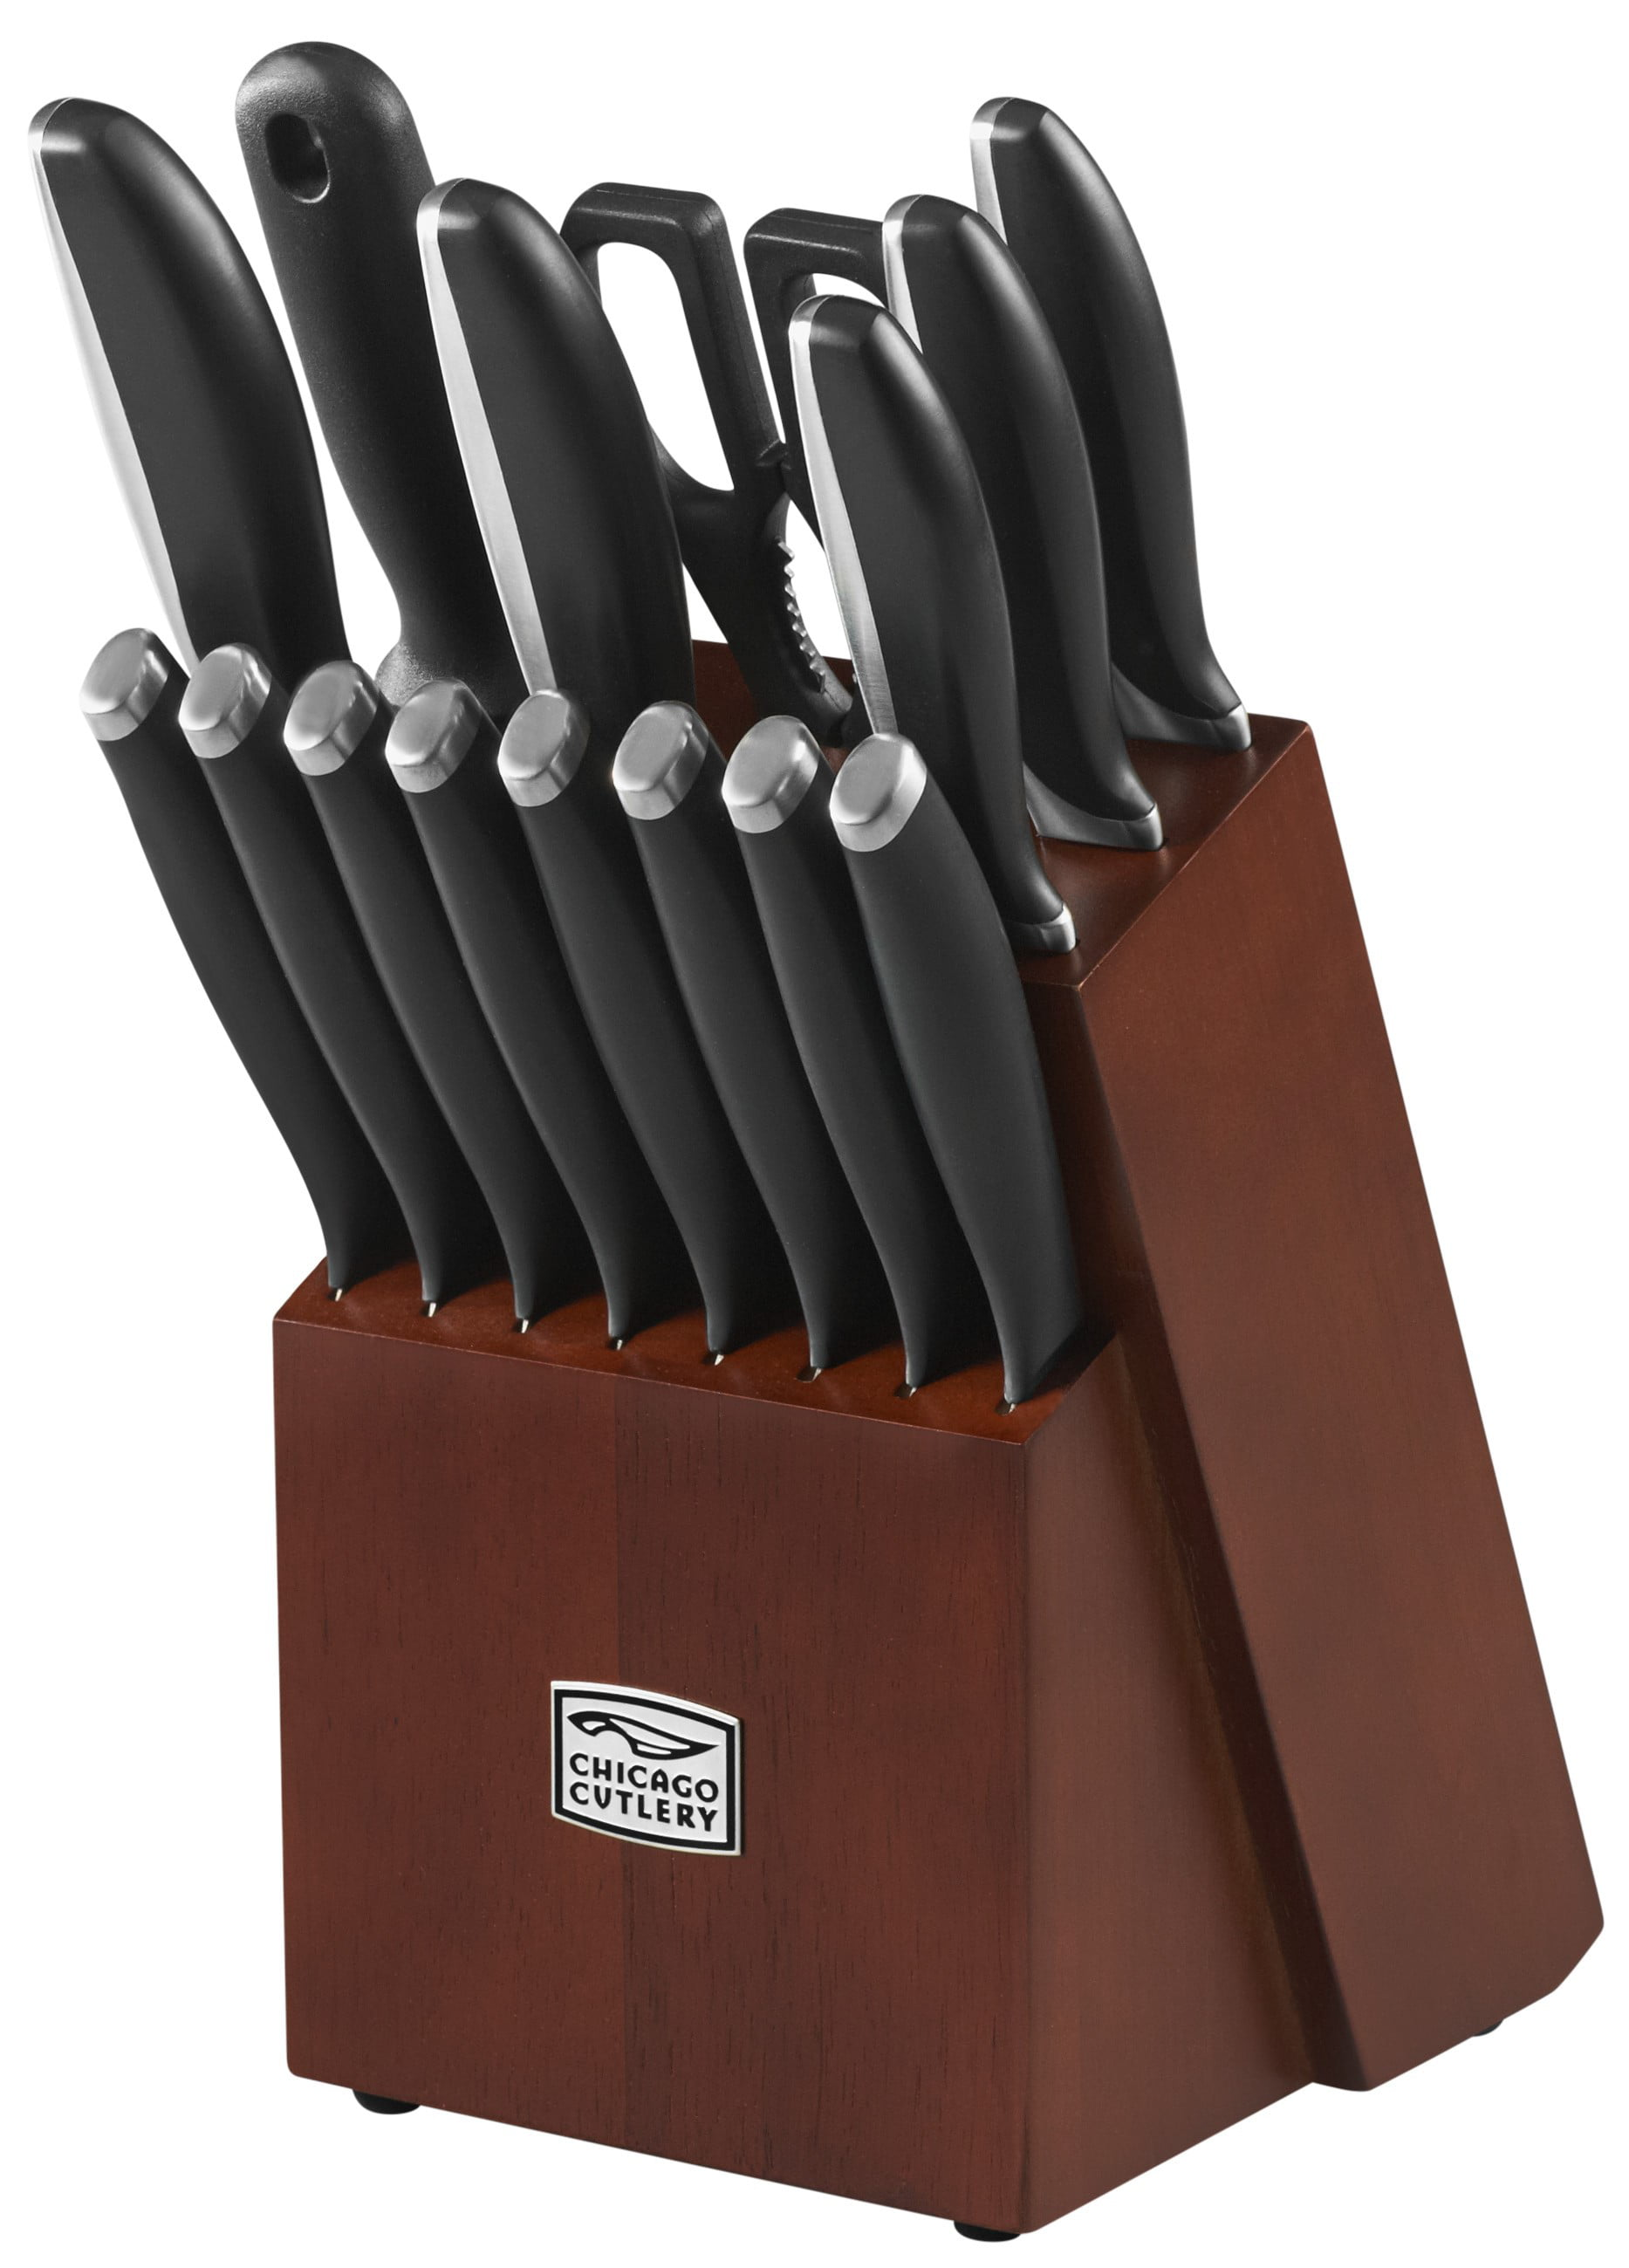 Click here to buy Chicago Cutlery Avondale Stainless Steel Knife Set (16 Pieces) by World Kitchen LLC.